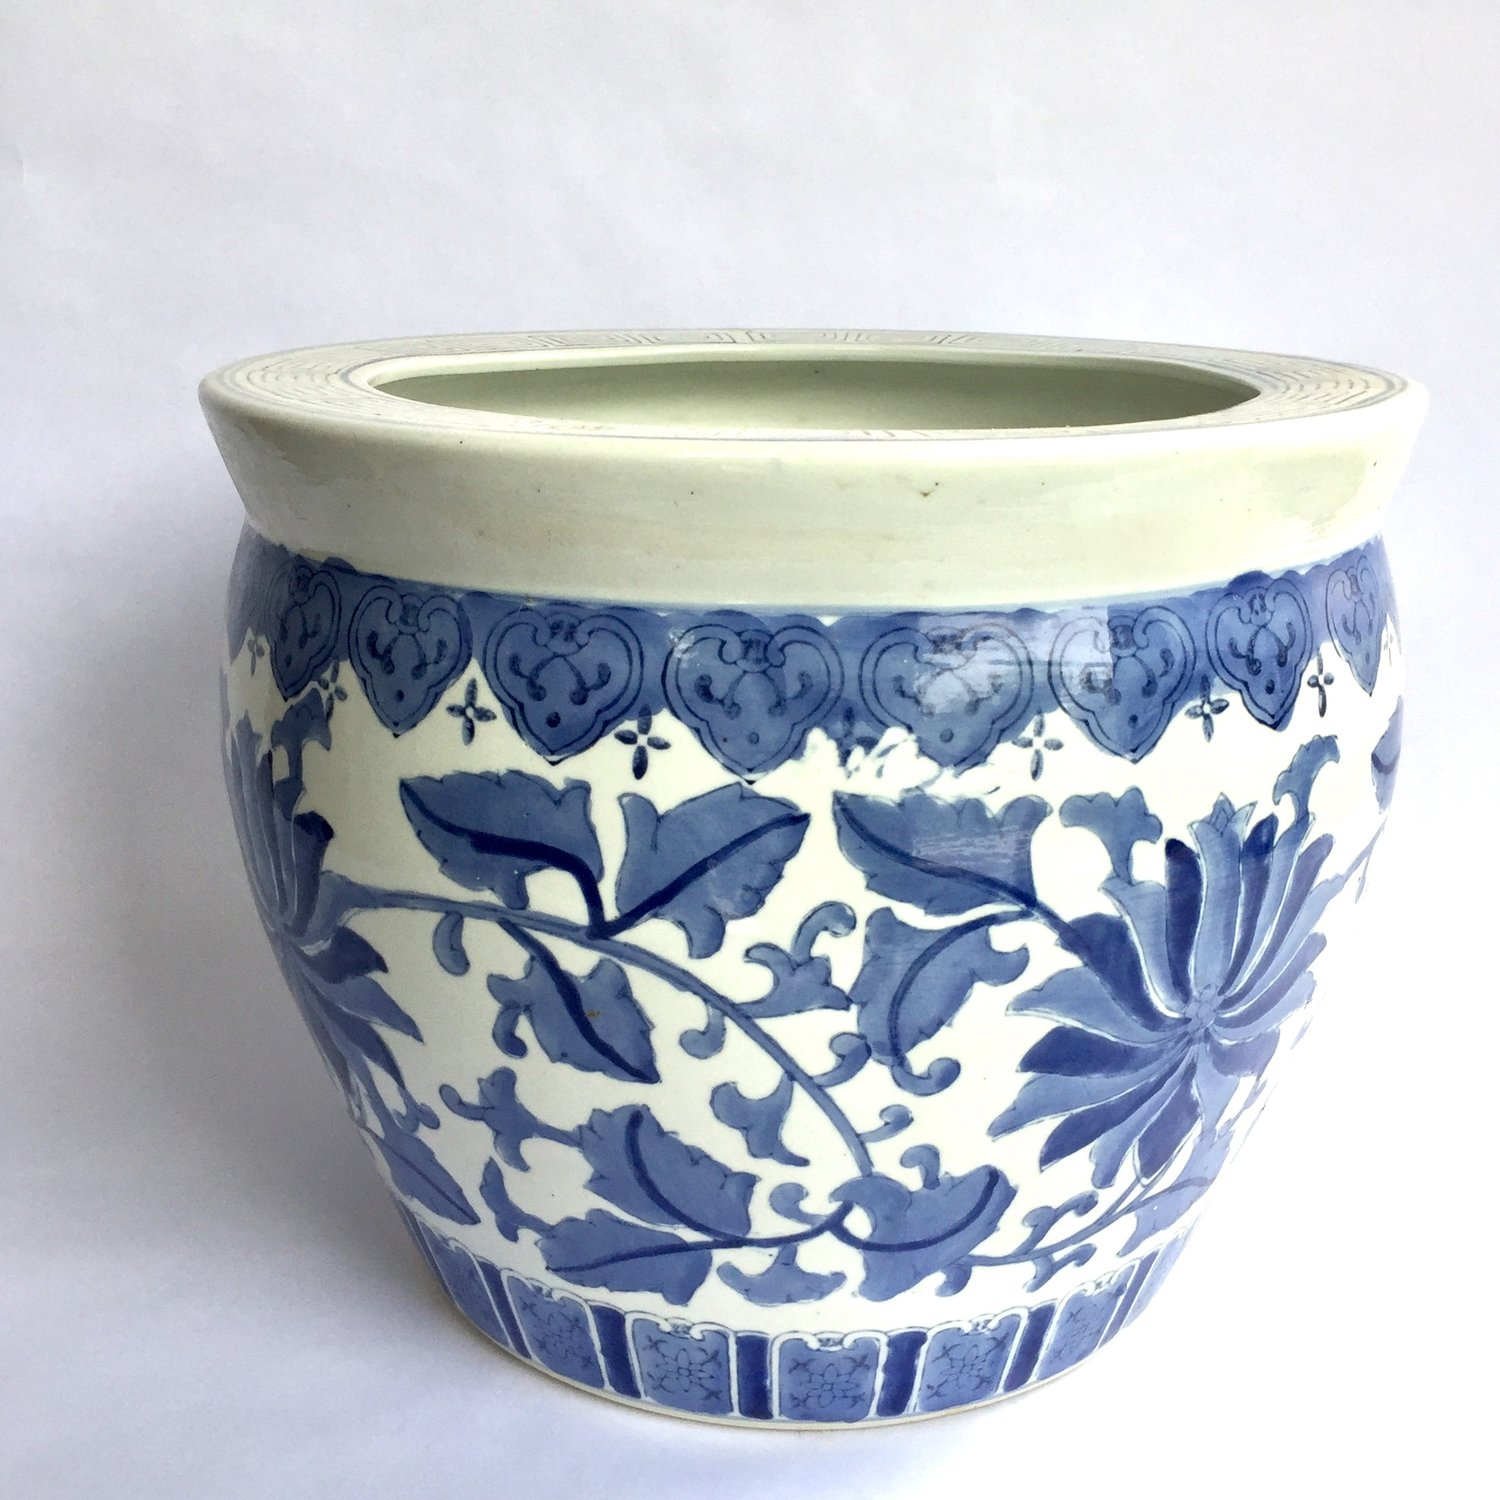 The Vintage Laundry Large Blue And White Chinoiserie Planter